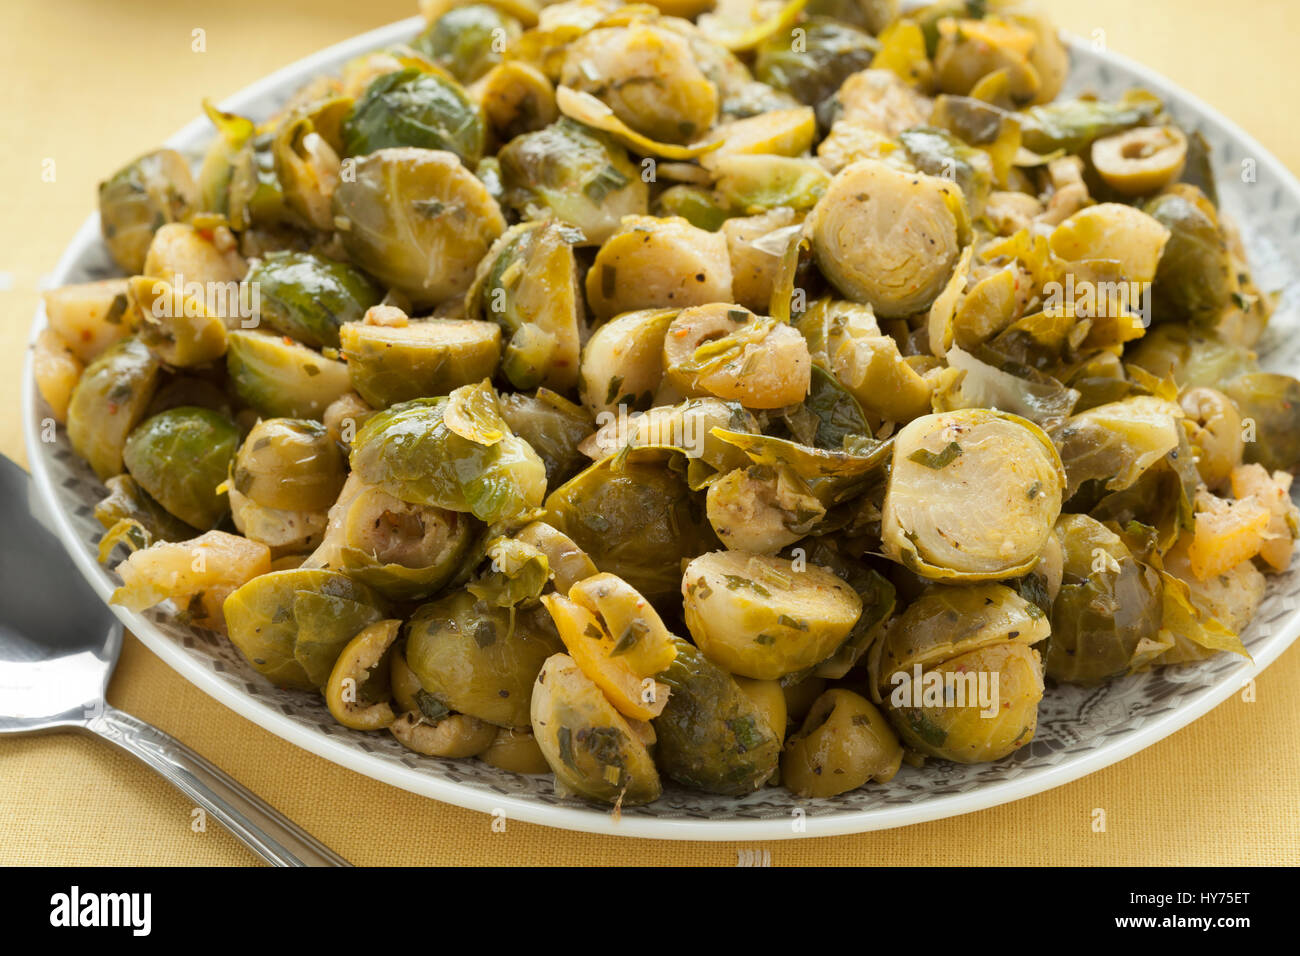 Moroccan dish with Brussels sprouts and preserved lemon close up - Stock Image